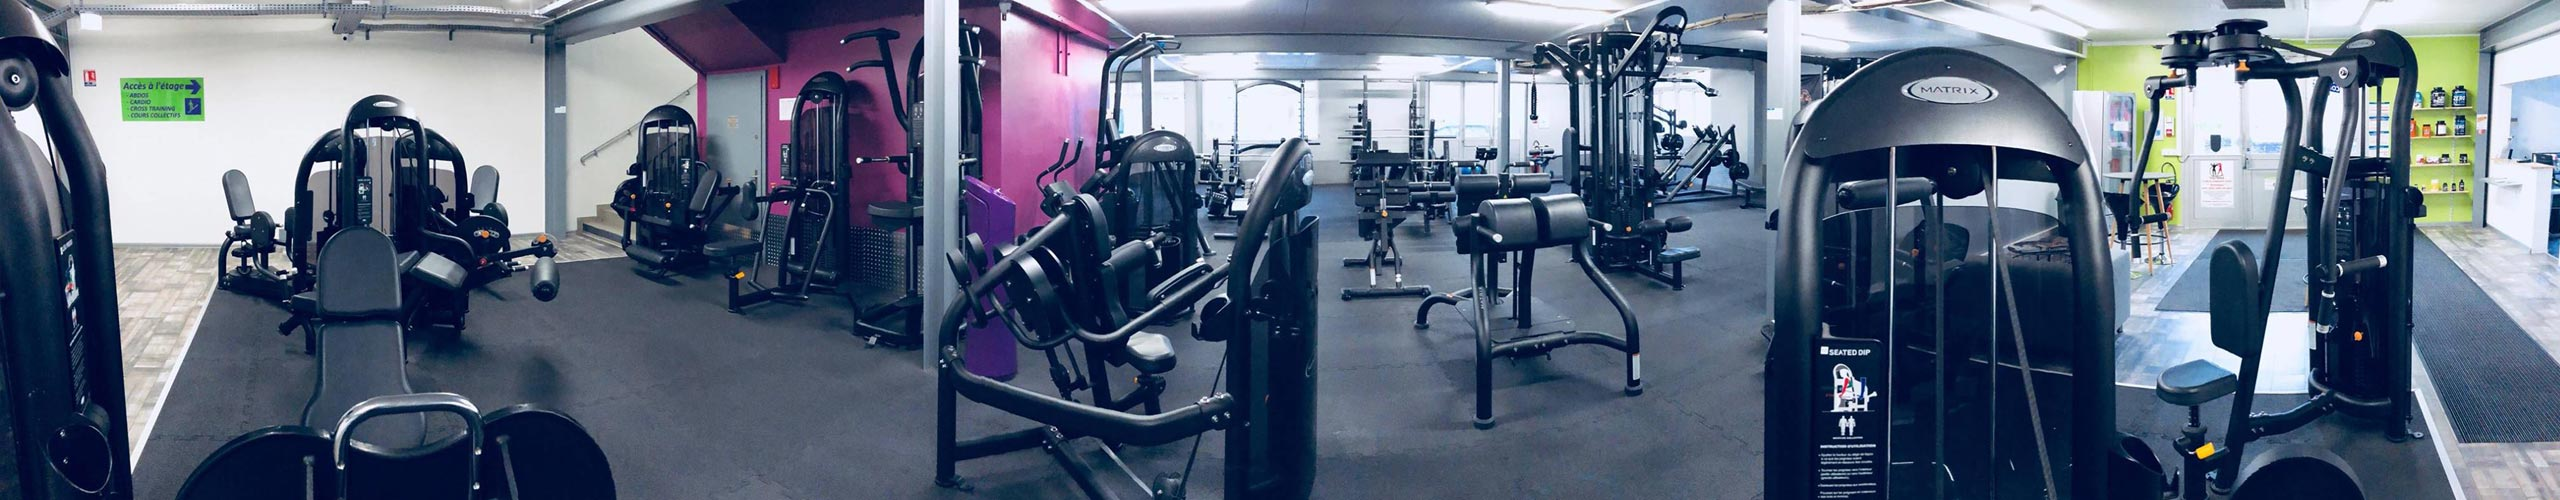 Altkirch Fitness Club Concept